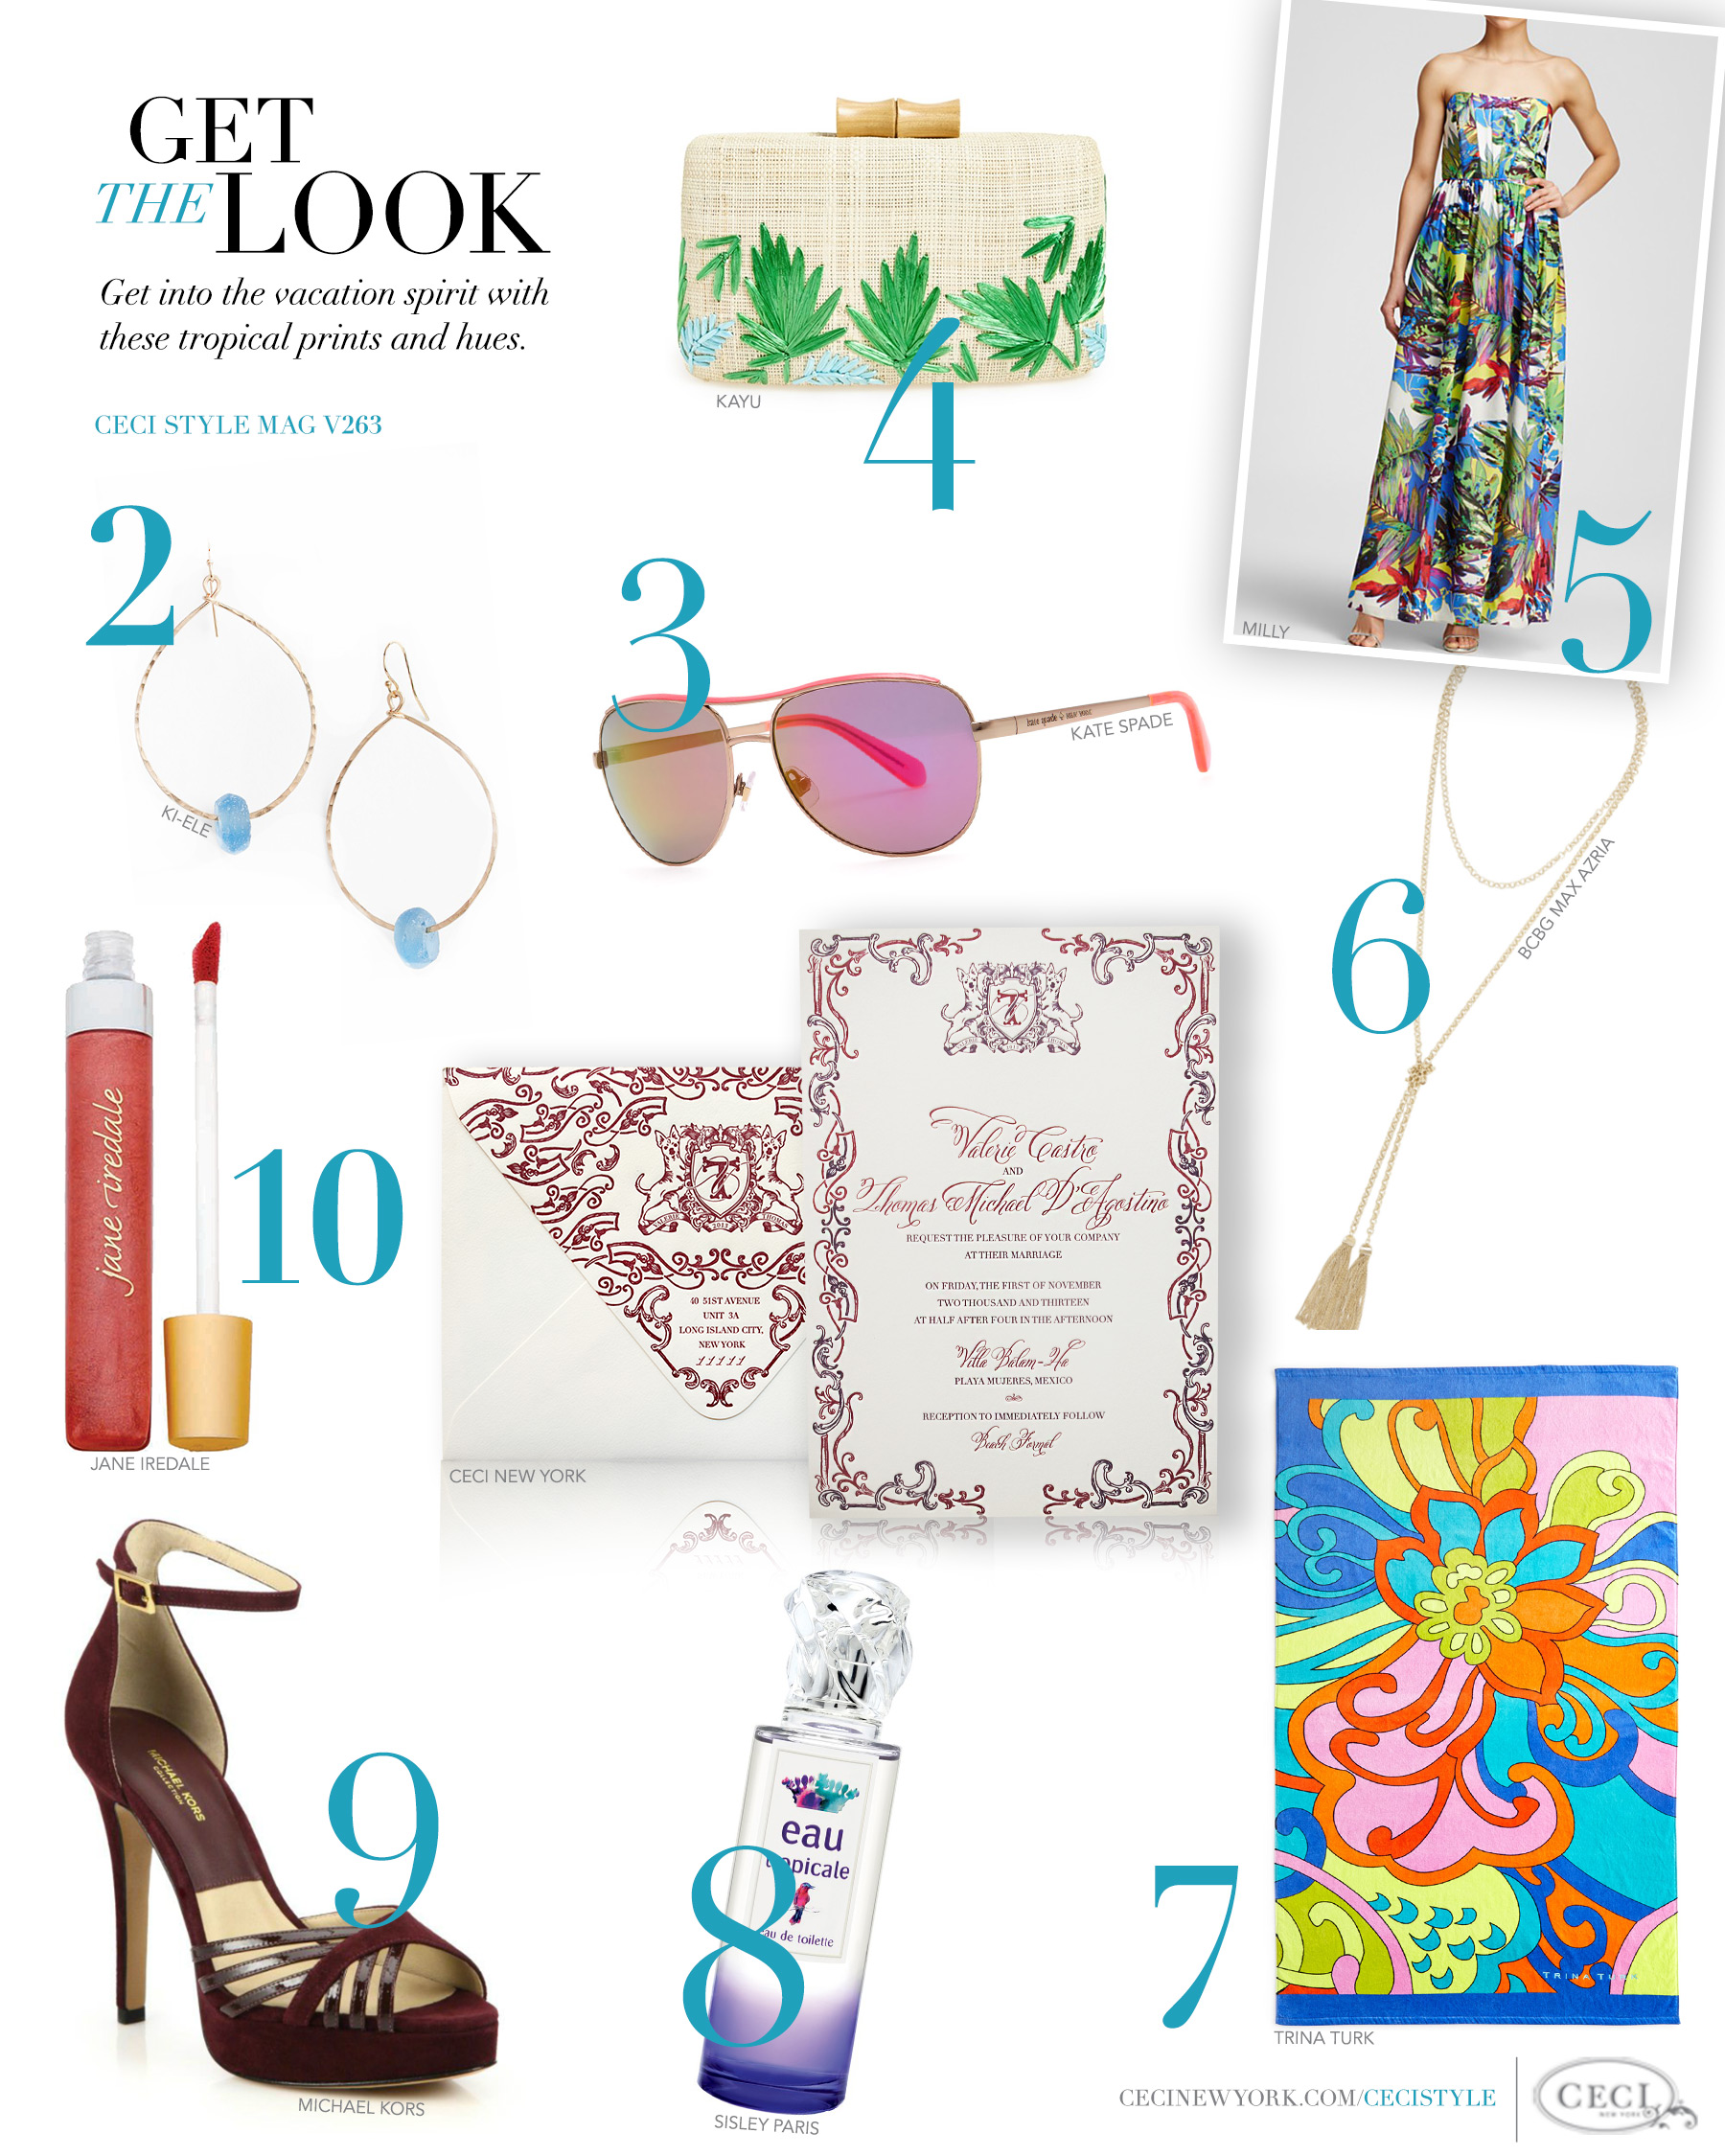 CeciStyle Magazine v263: Get The Look - Tropical Getaway - Get into the vacation spirit with these tropical prints and hues. - Luxury Wedding Invitations by Ceci New York - fashion, style, ceci new york, ki-ele, earrings, jewerly, kate spade, sunglass, aviator, kayu, makaha straw clutch, milly, maxi dress, bcbg max azria, necklace, trina turk, cactus flower, beach towel, sisley, paris, eau de toilette, michael kors, kinsley, sandal, jane iredale, lip gloss